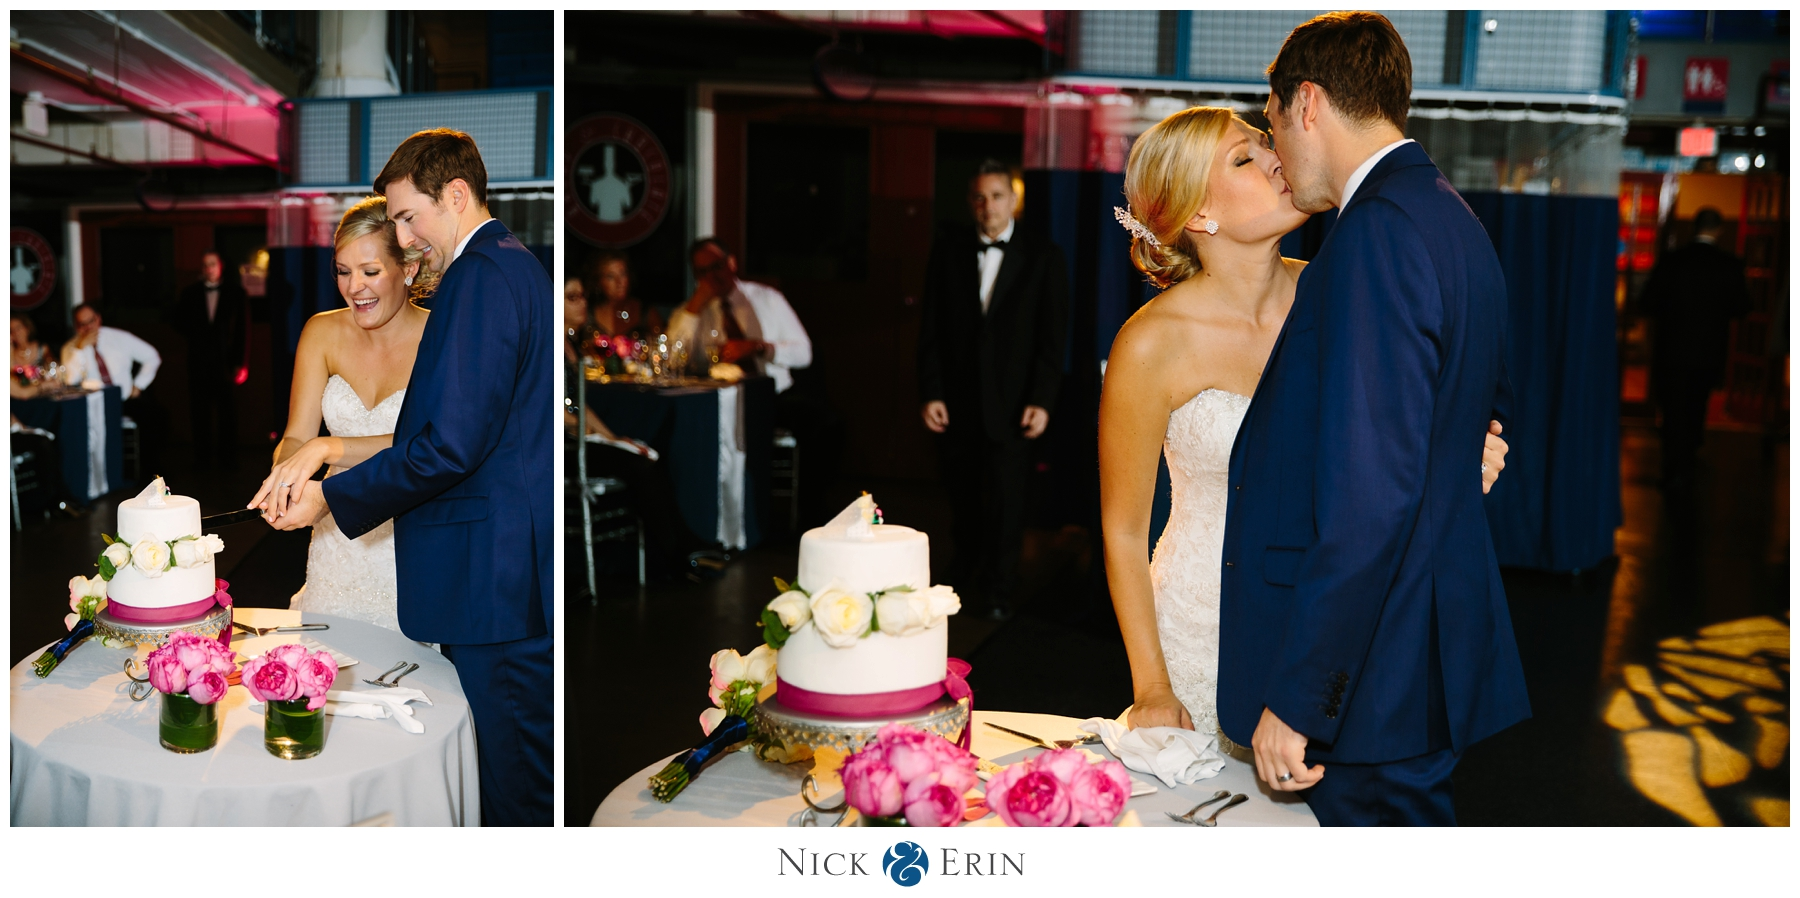 Donner_Photography_Torpedo Factory Wedding_Courtney and Scott_0054